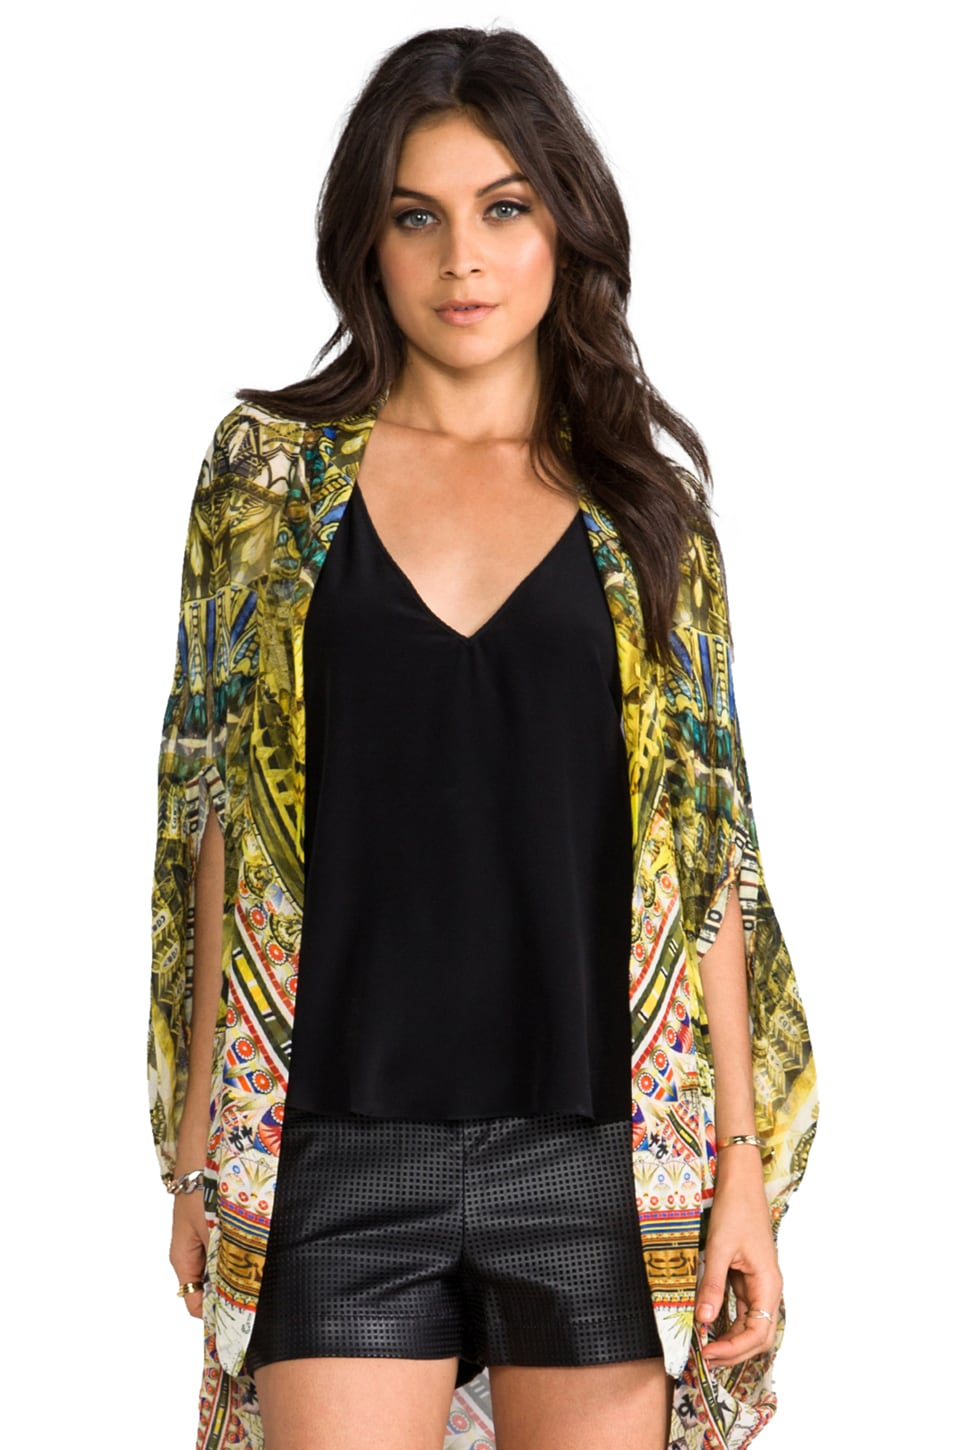 Camilla Sands of Egypt Open Front Cardi Cape in Eye of Horus